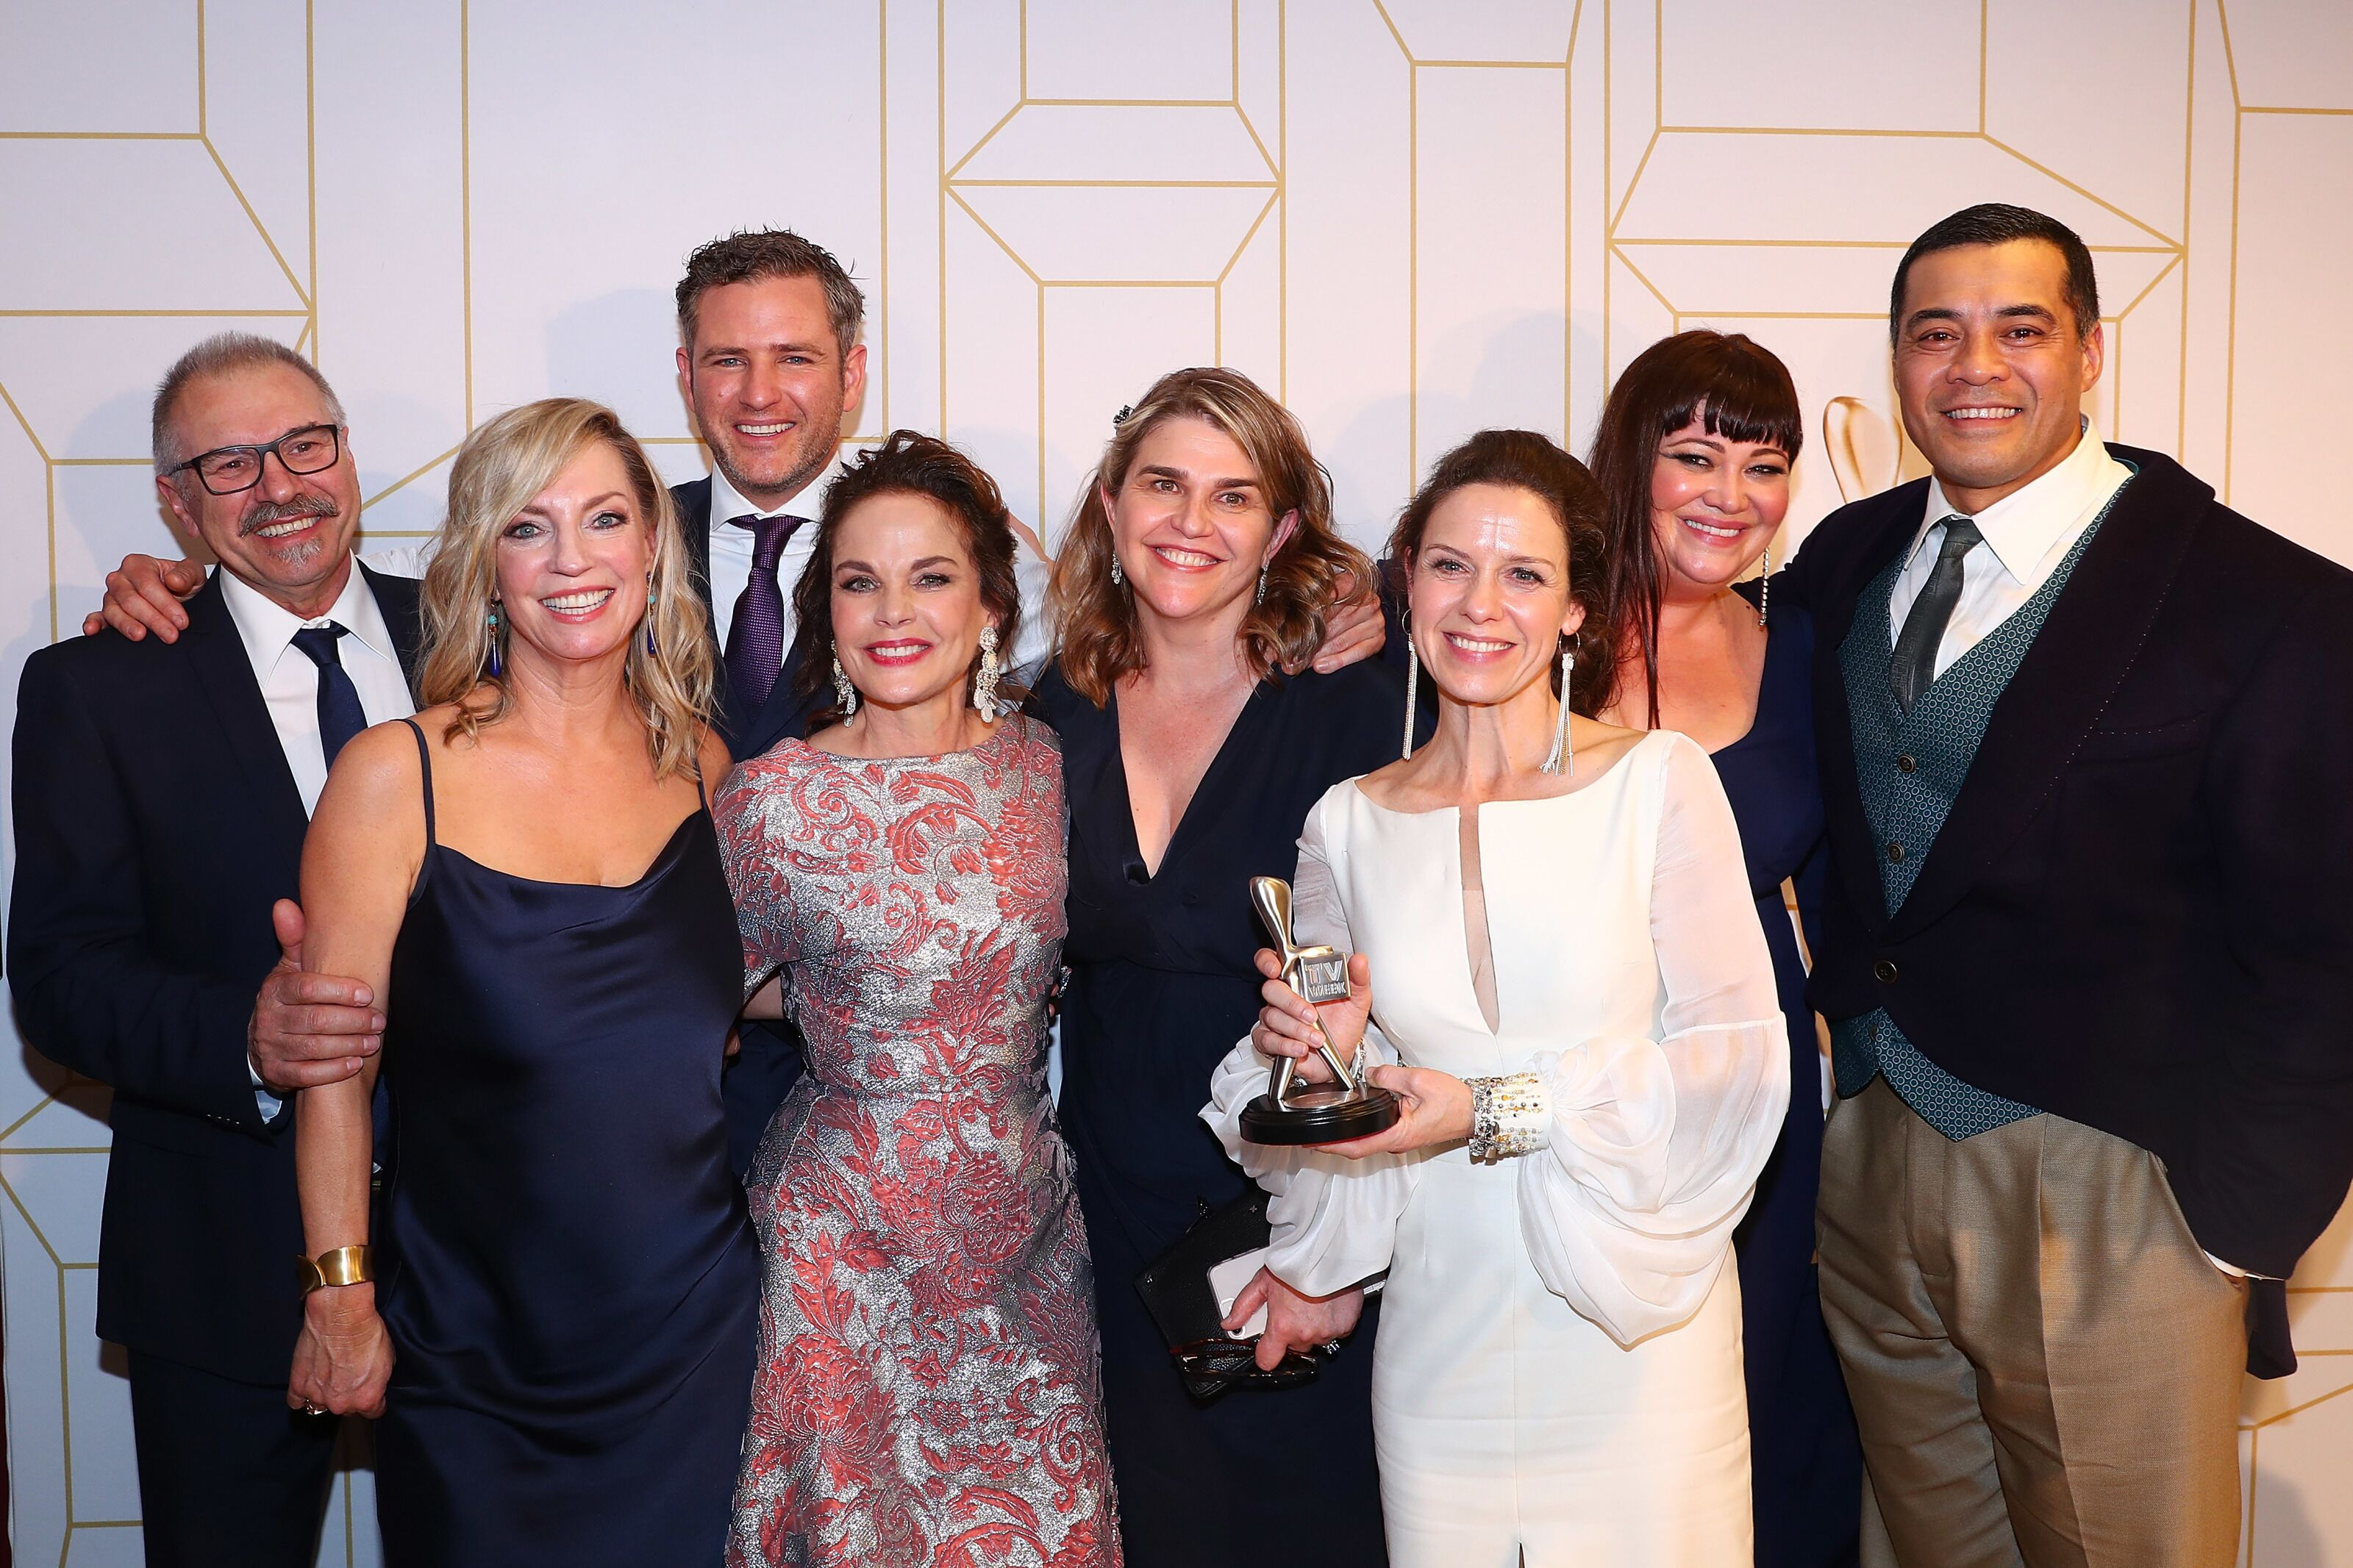 Wentworth is coming back for season 7 and production has